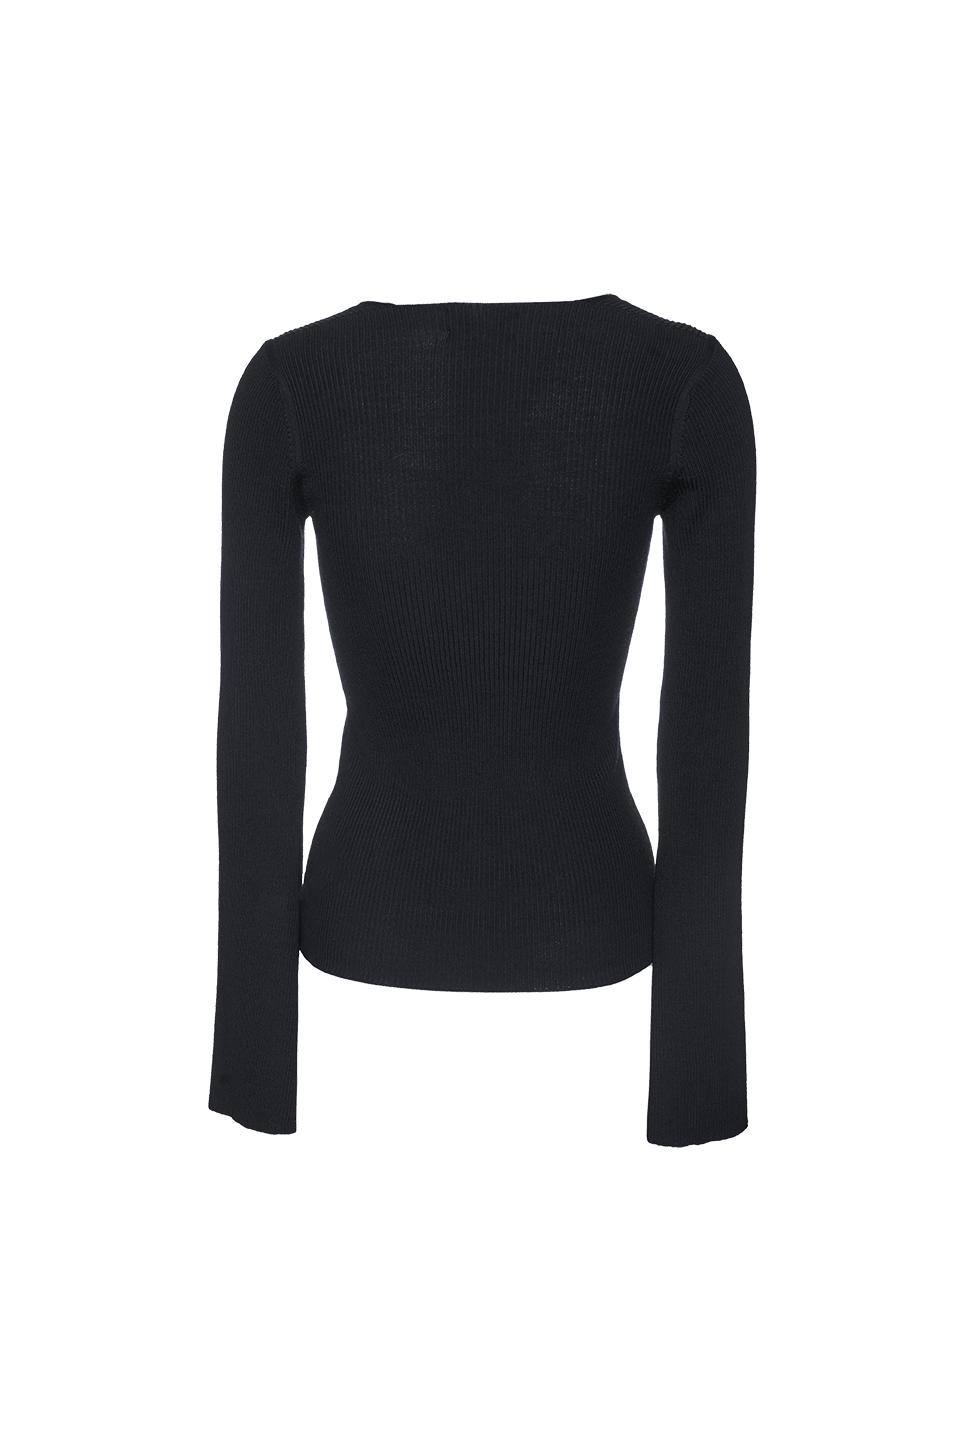 THE ST MORITZ WOOL FITTED VNECK KNIT 2